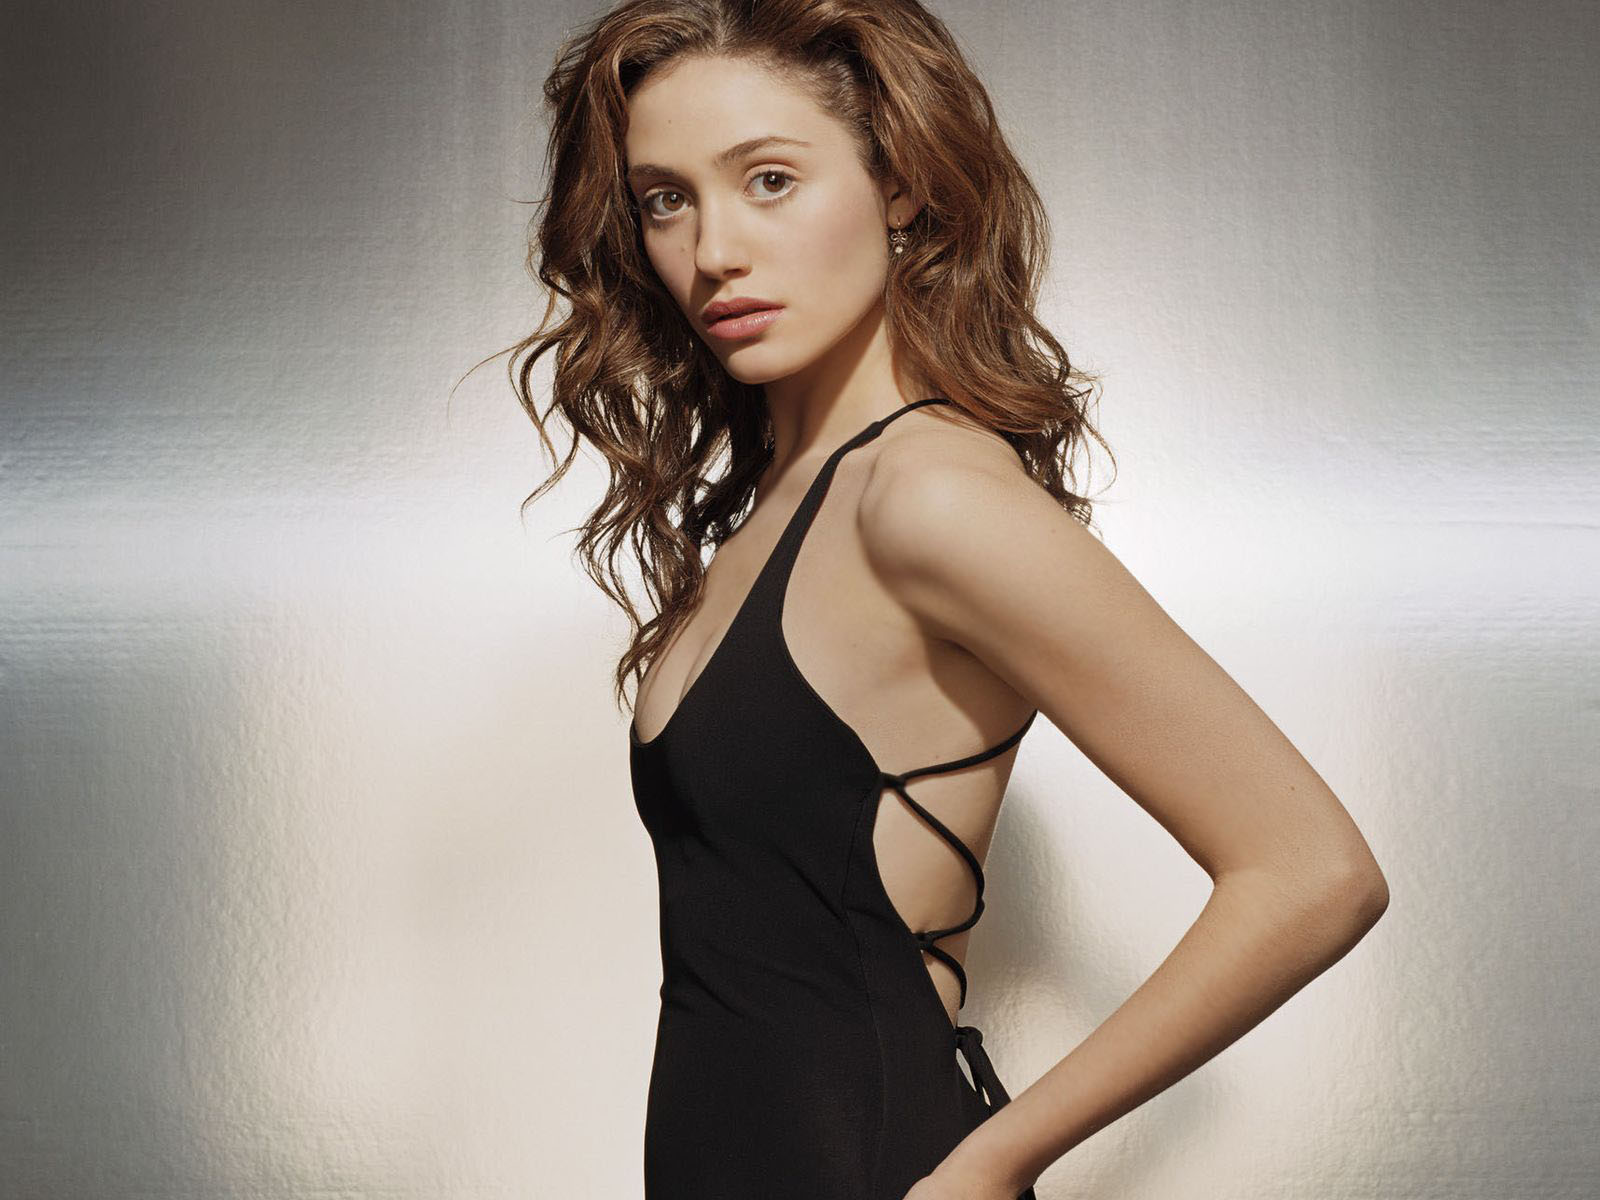 Emmy Rossum Wallpapers High Resolution and Quality Download Emmy Rossum